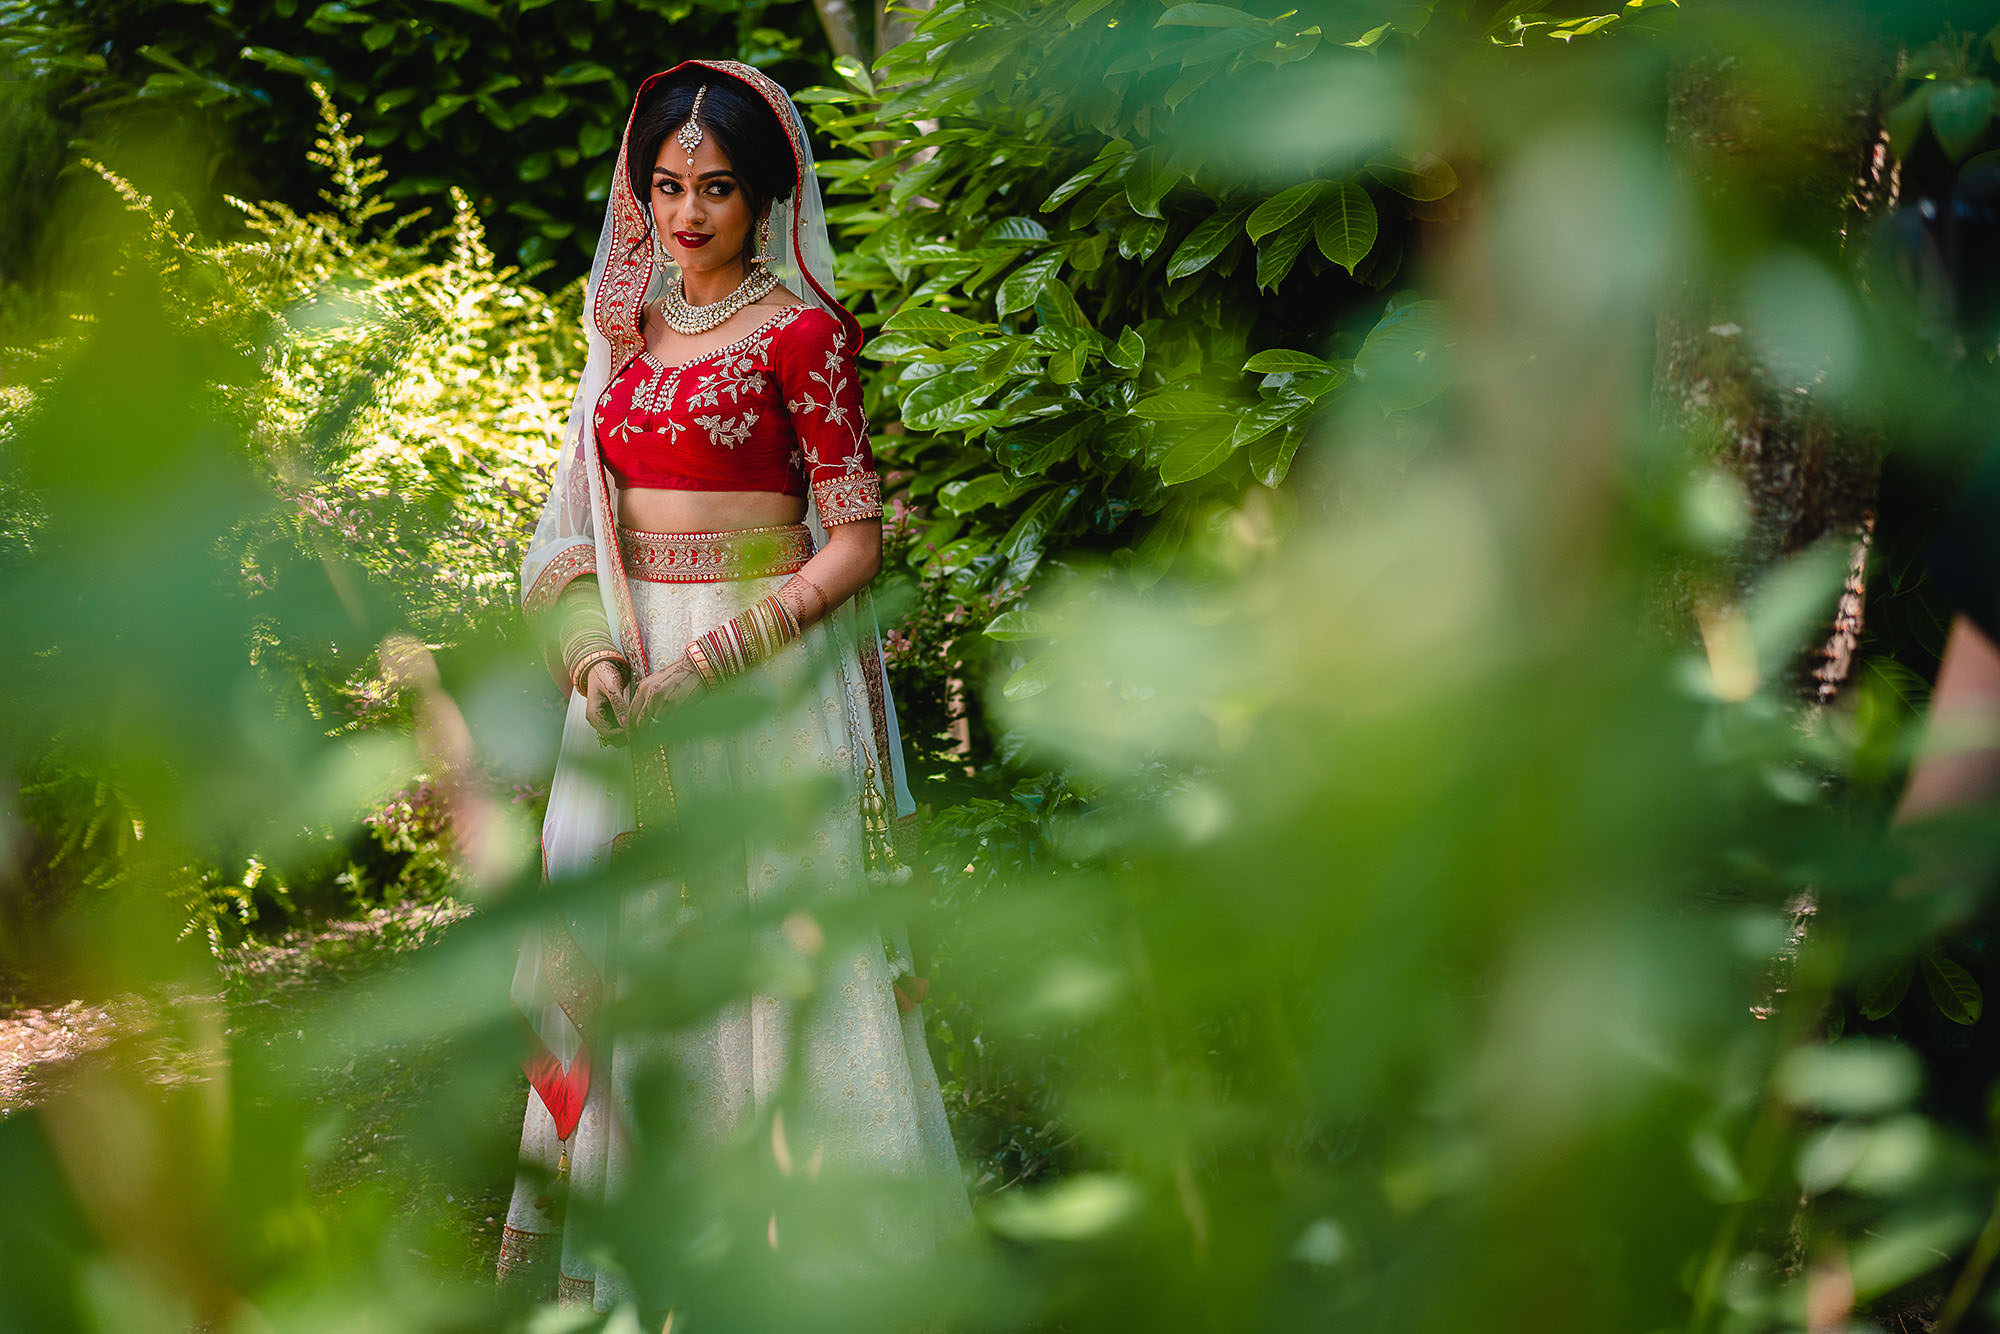 bridal portrait in her indian wedding outfit